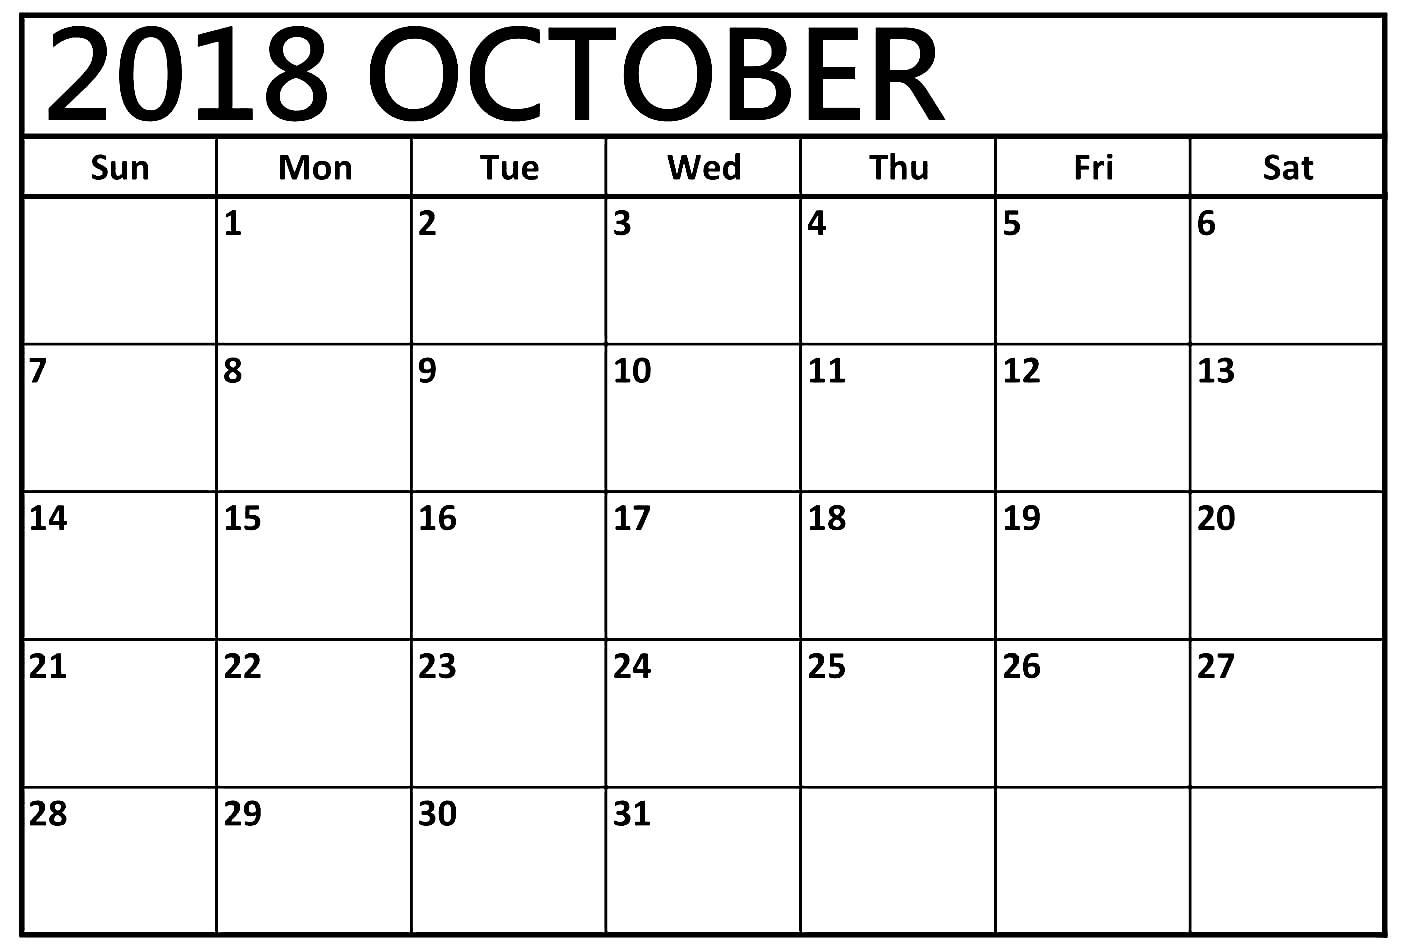 print october 2018 calendar template business calendar templates October 2018 Calendar Printable Template erdferdf